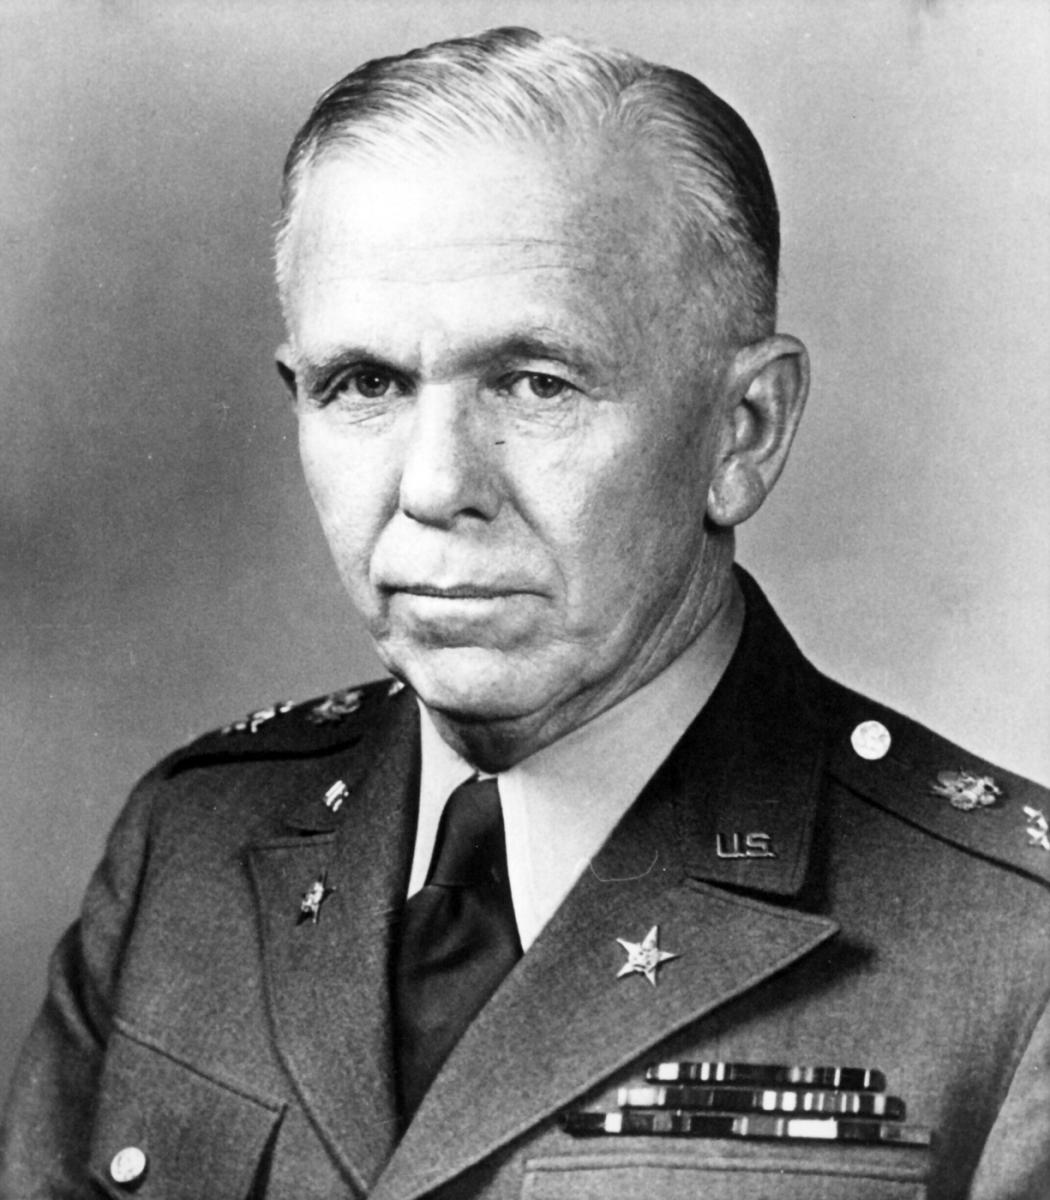 Gen. George Marshall, Former Secretary of Defense